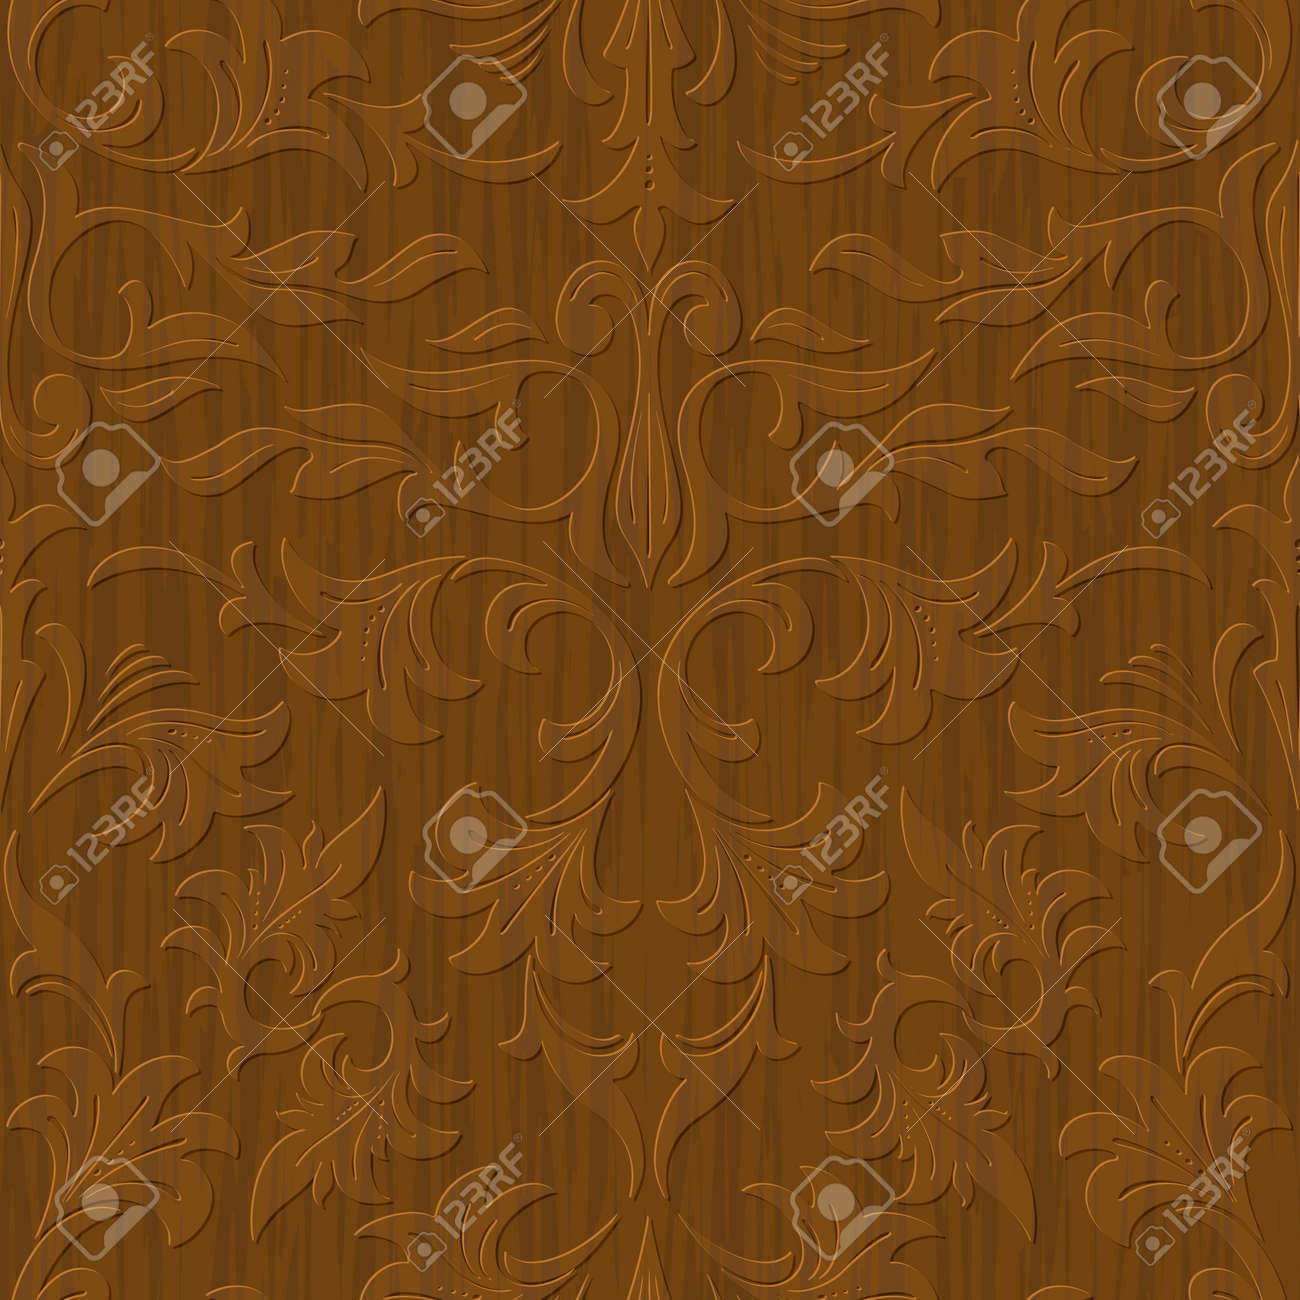 seamless abstract wood carved floral ornament background - 17476196